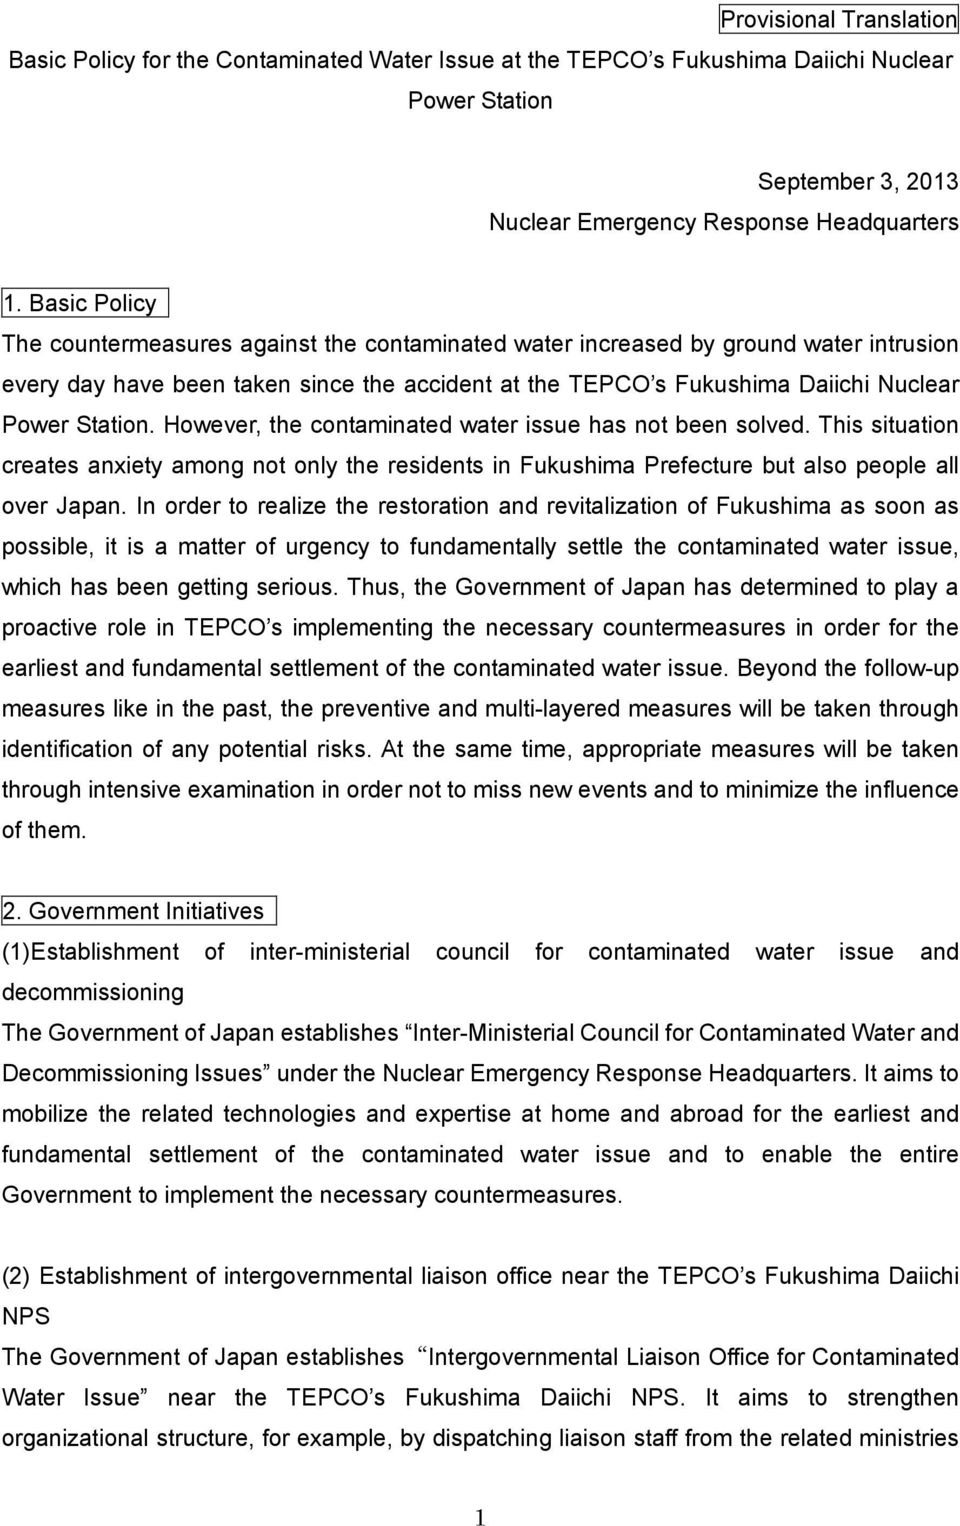 However, the contaminated water issue has not been solved. This situation creates anxiety among not only the residents in Fukushima Prefecture but also people all over Japan.